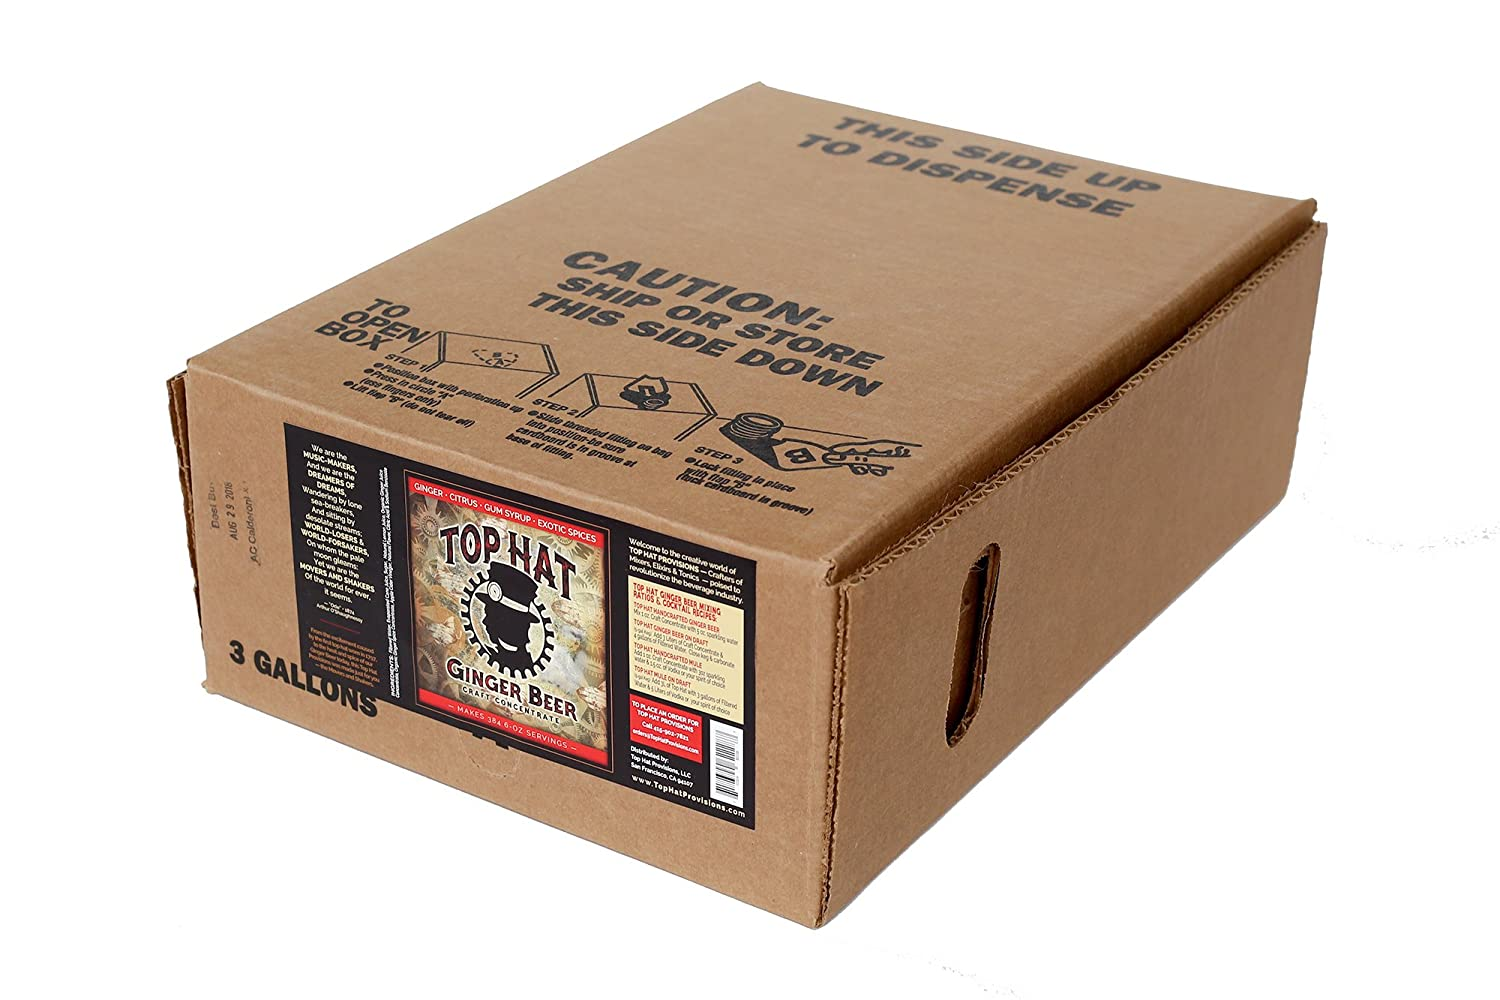 Top Hat Ginger Beer Soda Syrup Concentrate for Commercial Bag in Box Soda Gun and Fountain Systems - Bag in Box BIB QCD connection requred